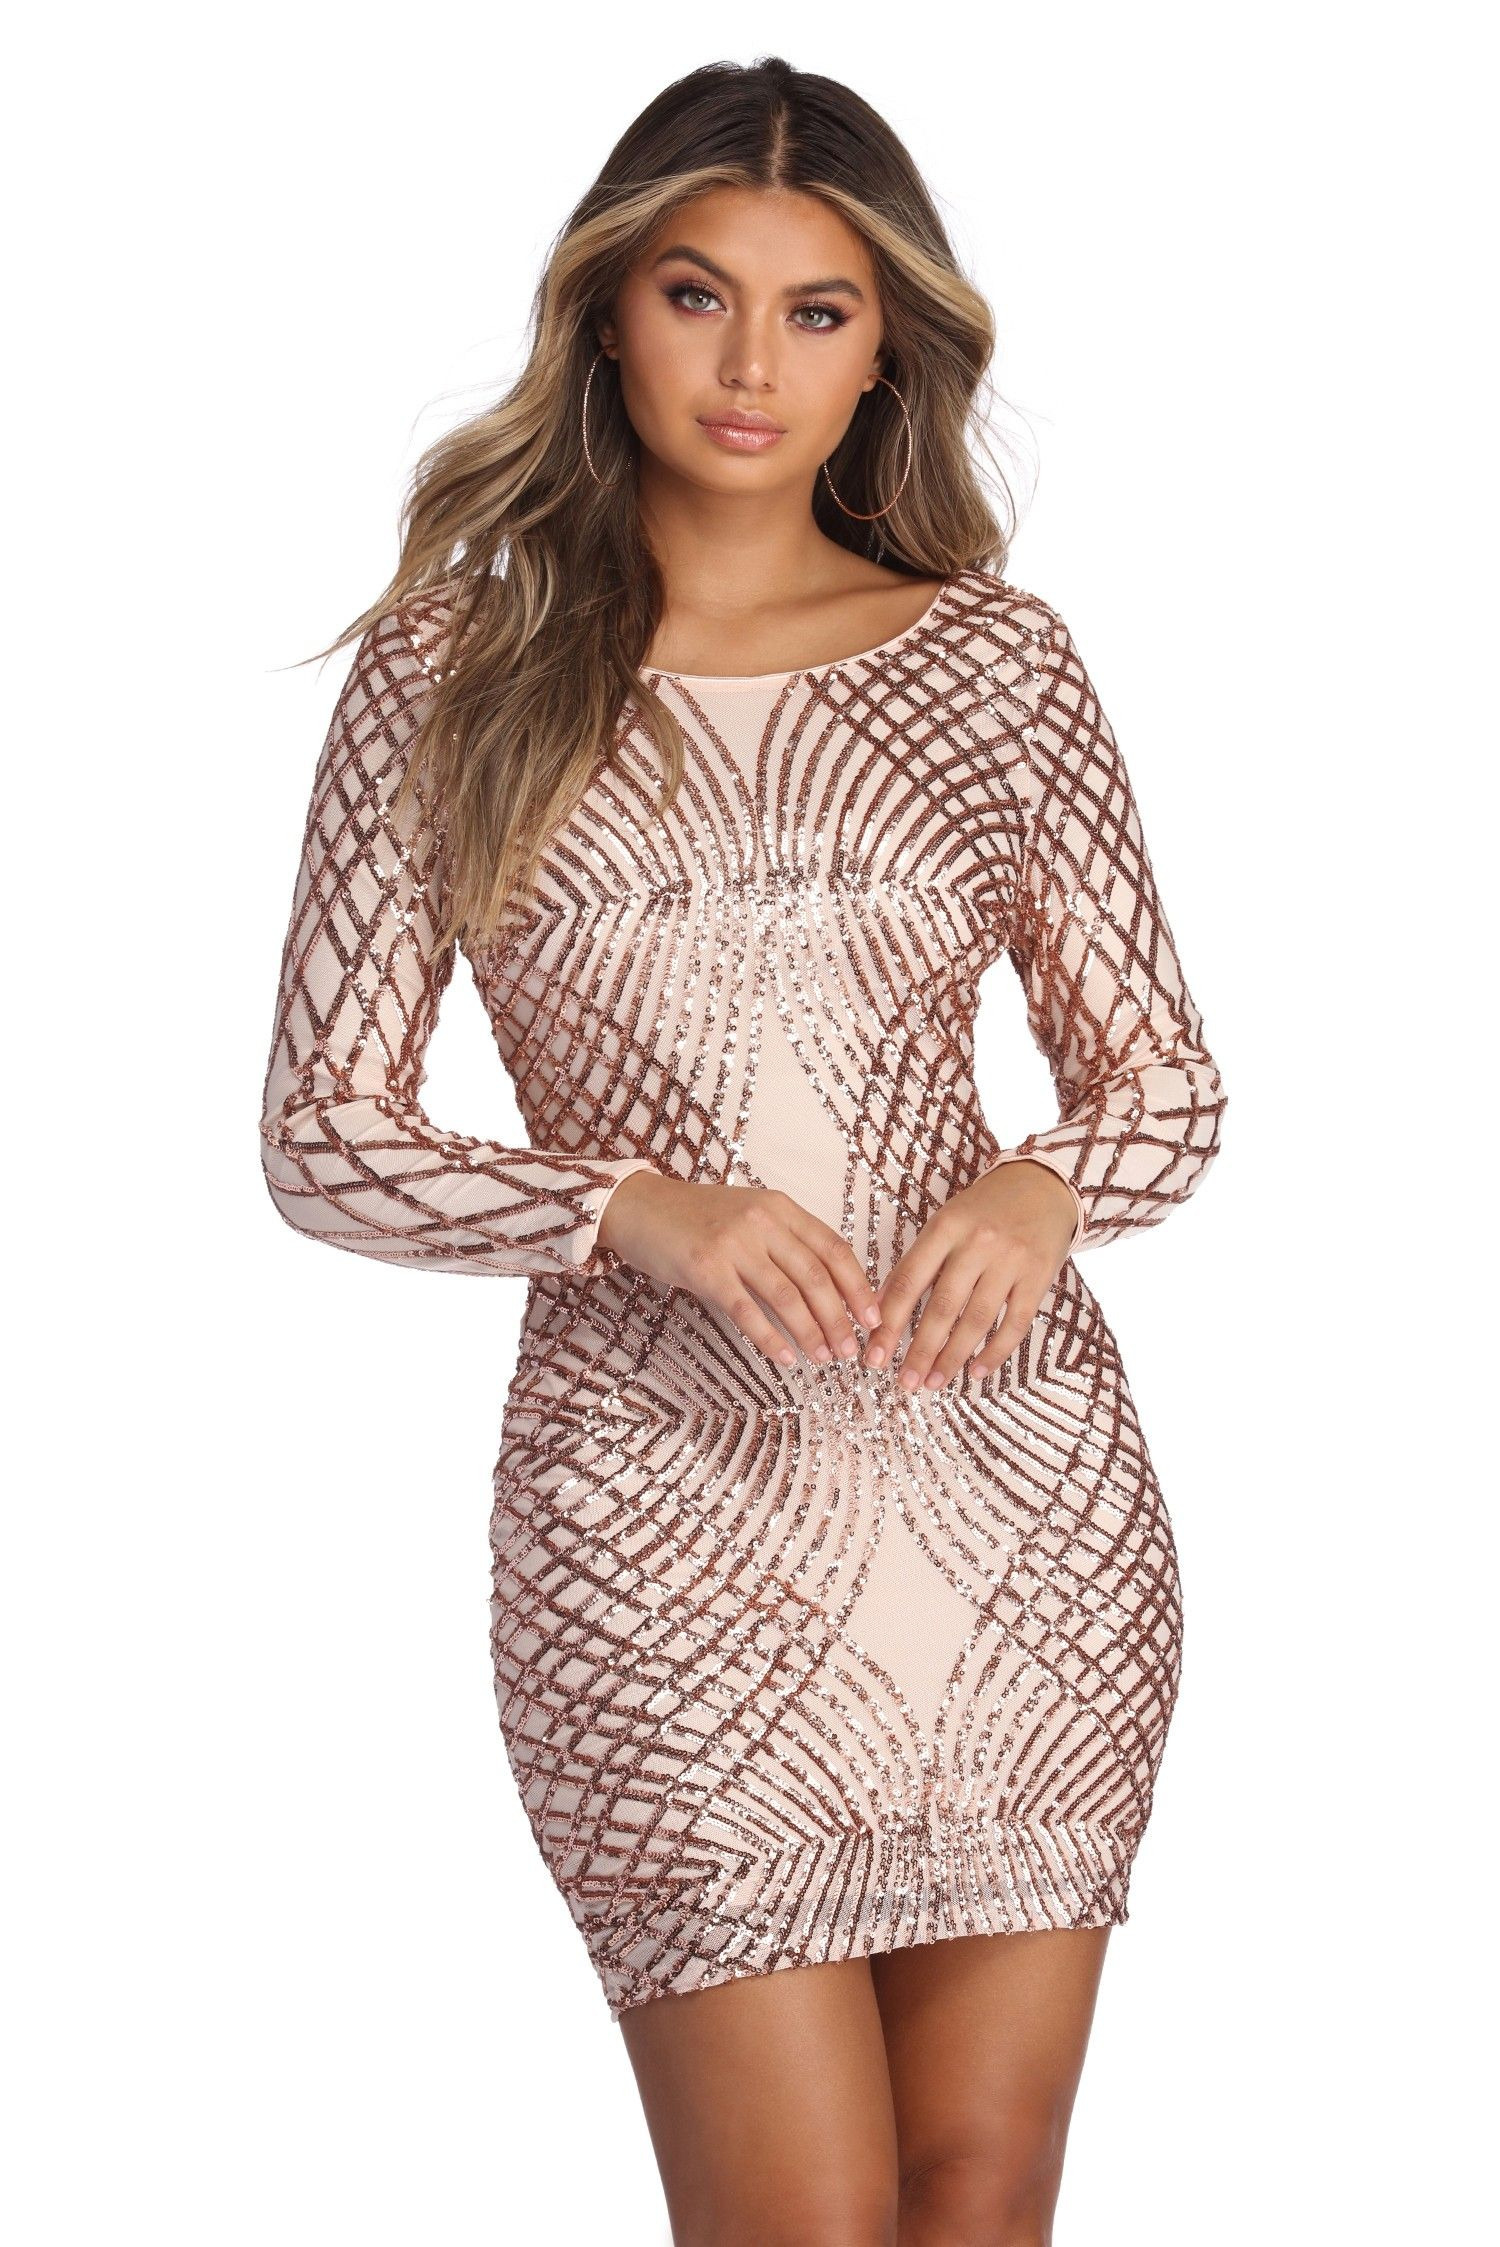 52c120b9ead Elysse Steal The Show Sequin Dress - Windsor (Tried this on at the mall